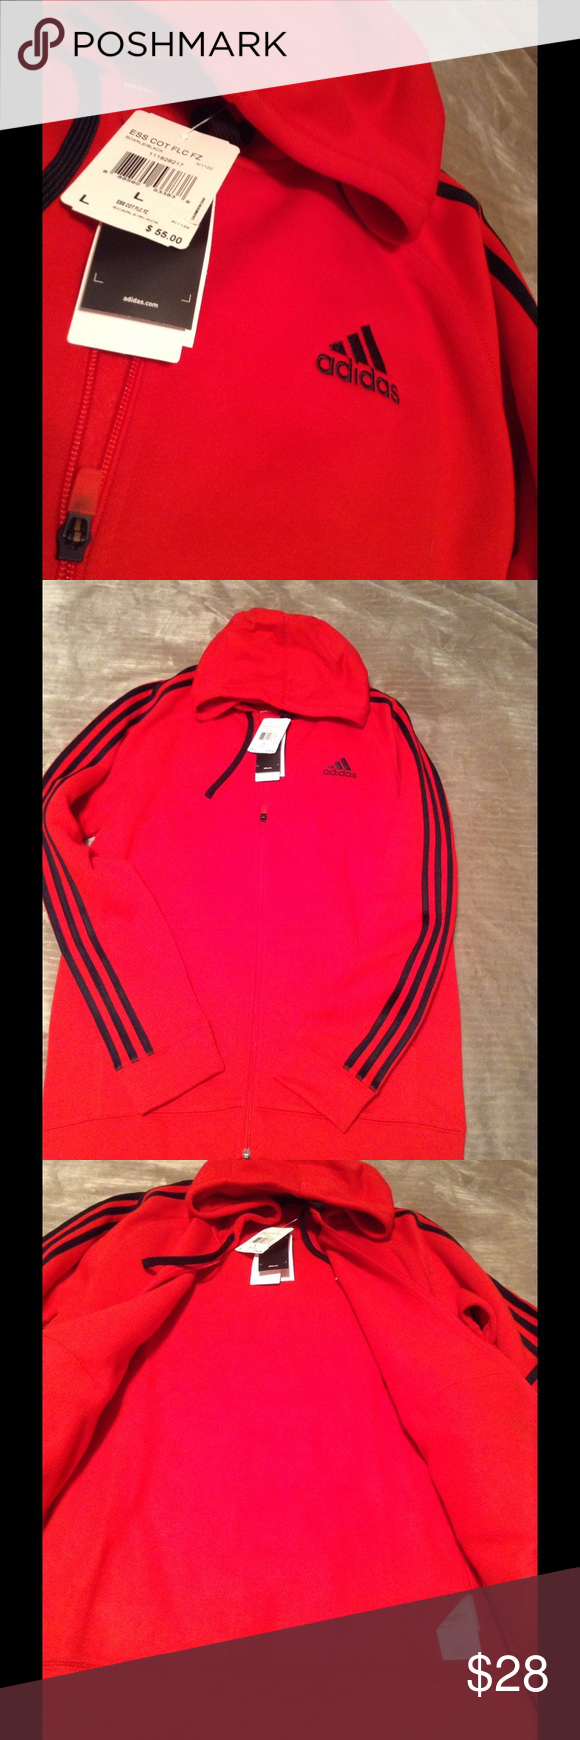 Men's new zippered fleece hoodie Red with black stripes down the arms Adidas Shirts Sweatshirts & Hoodies